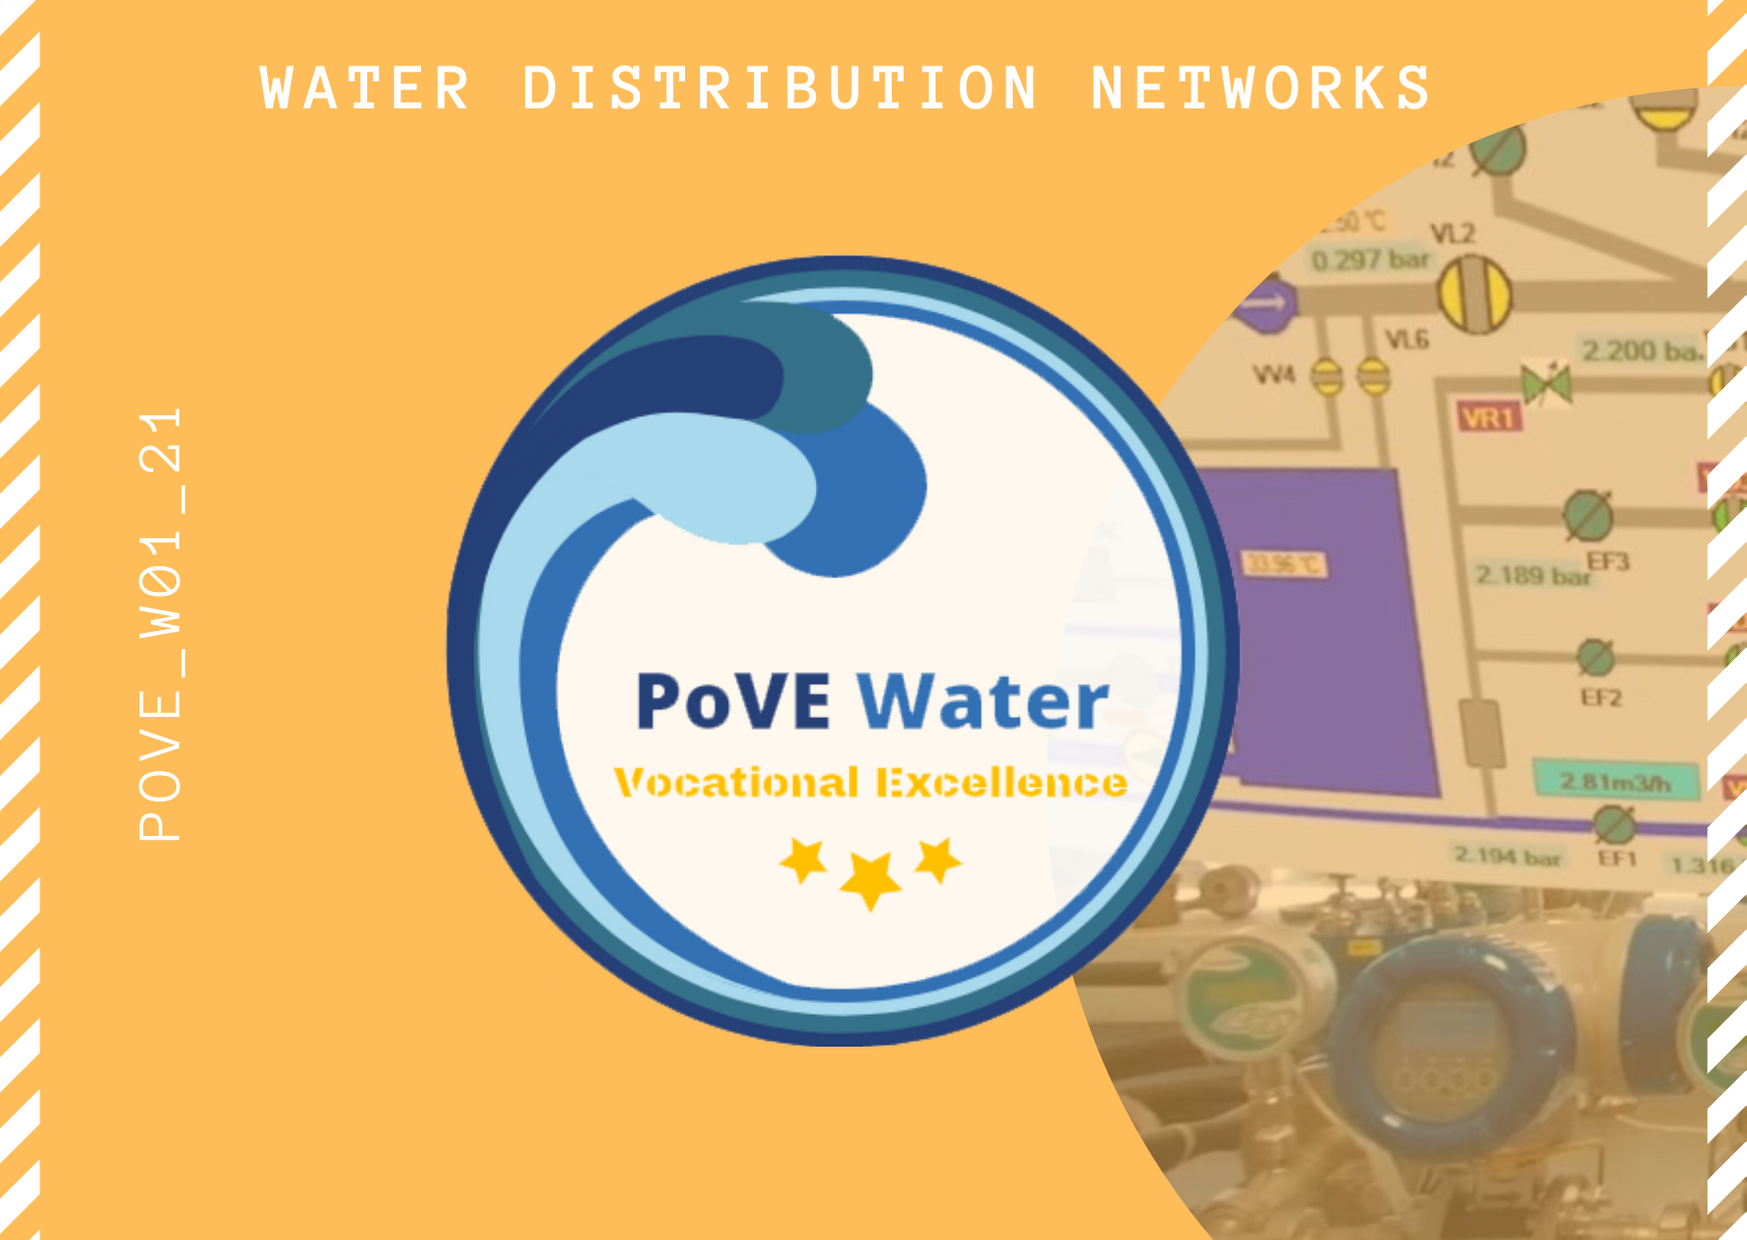 Water Distribution Networks